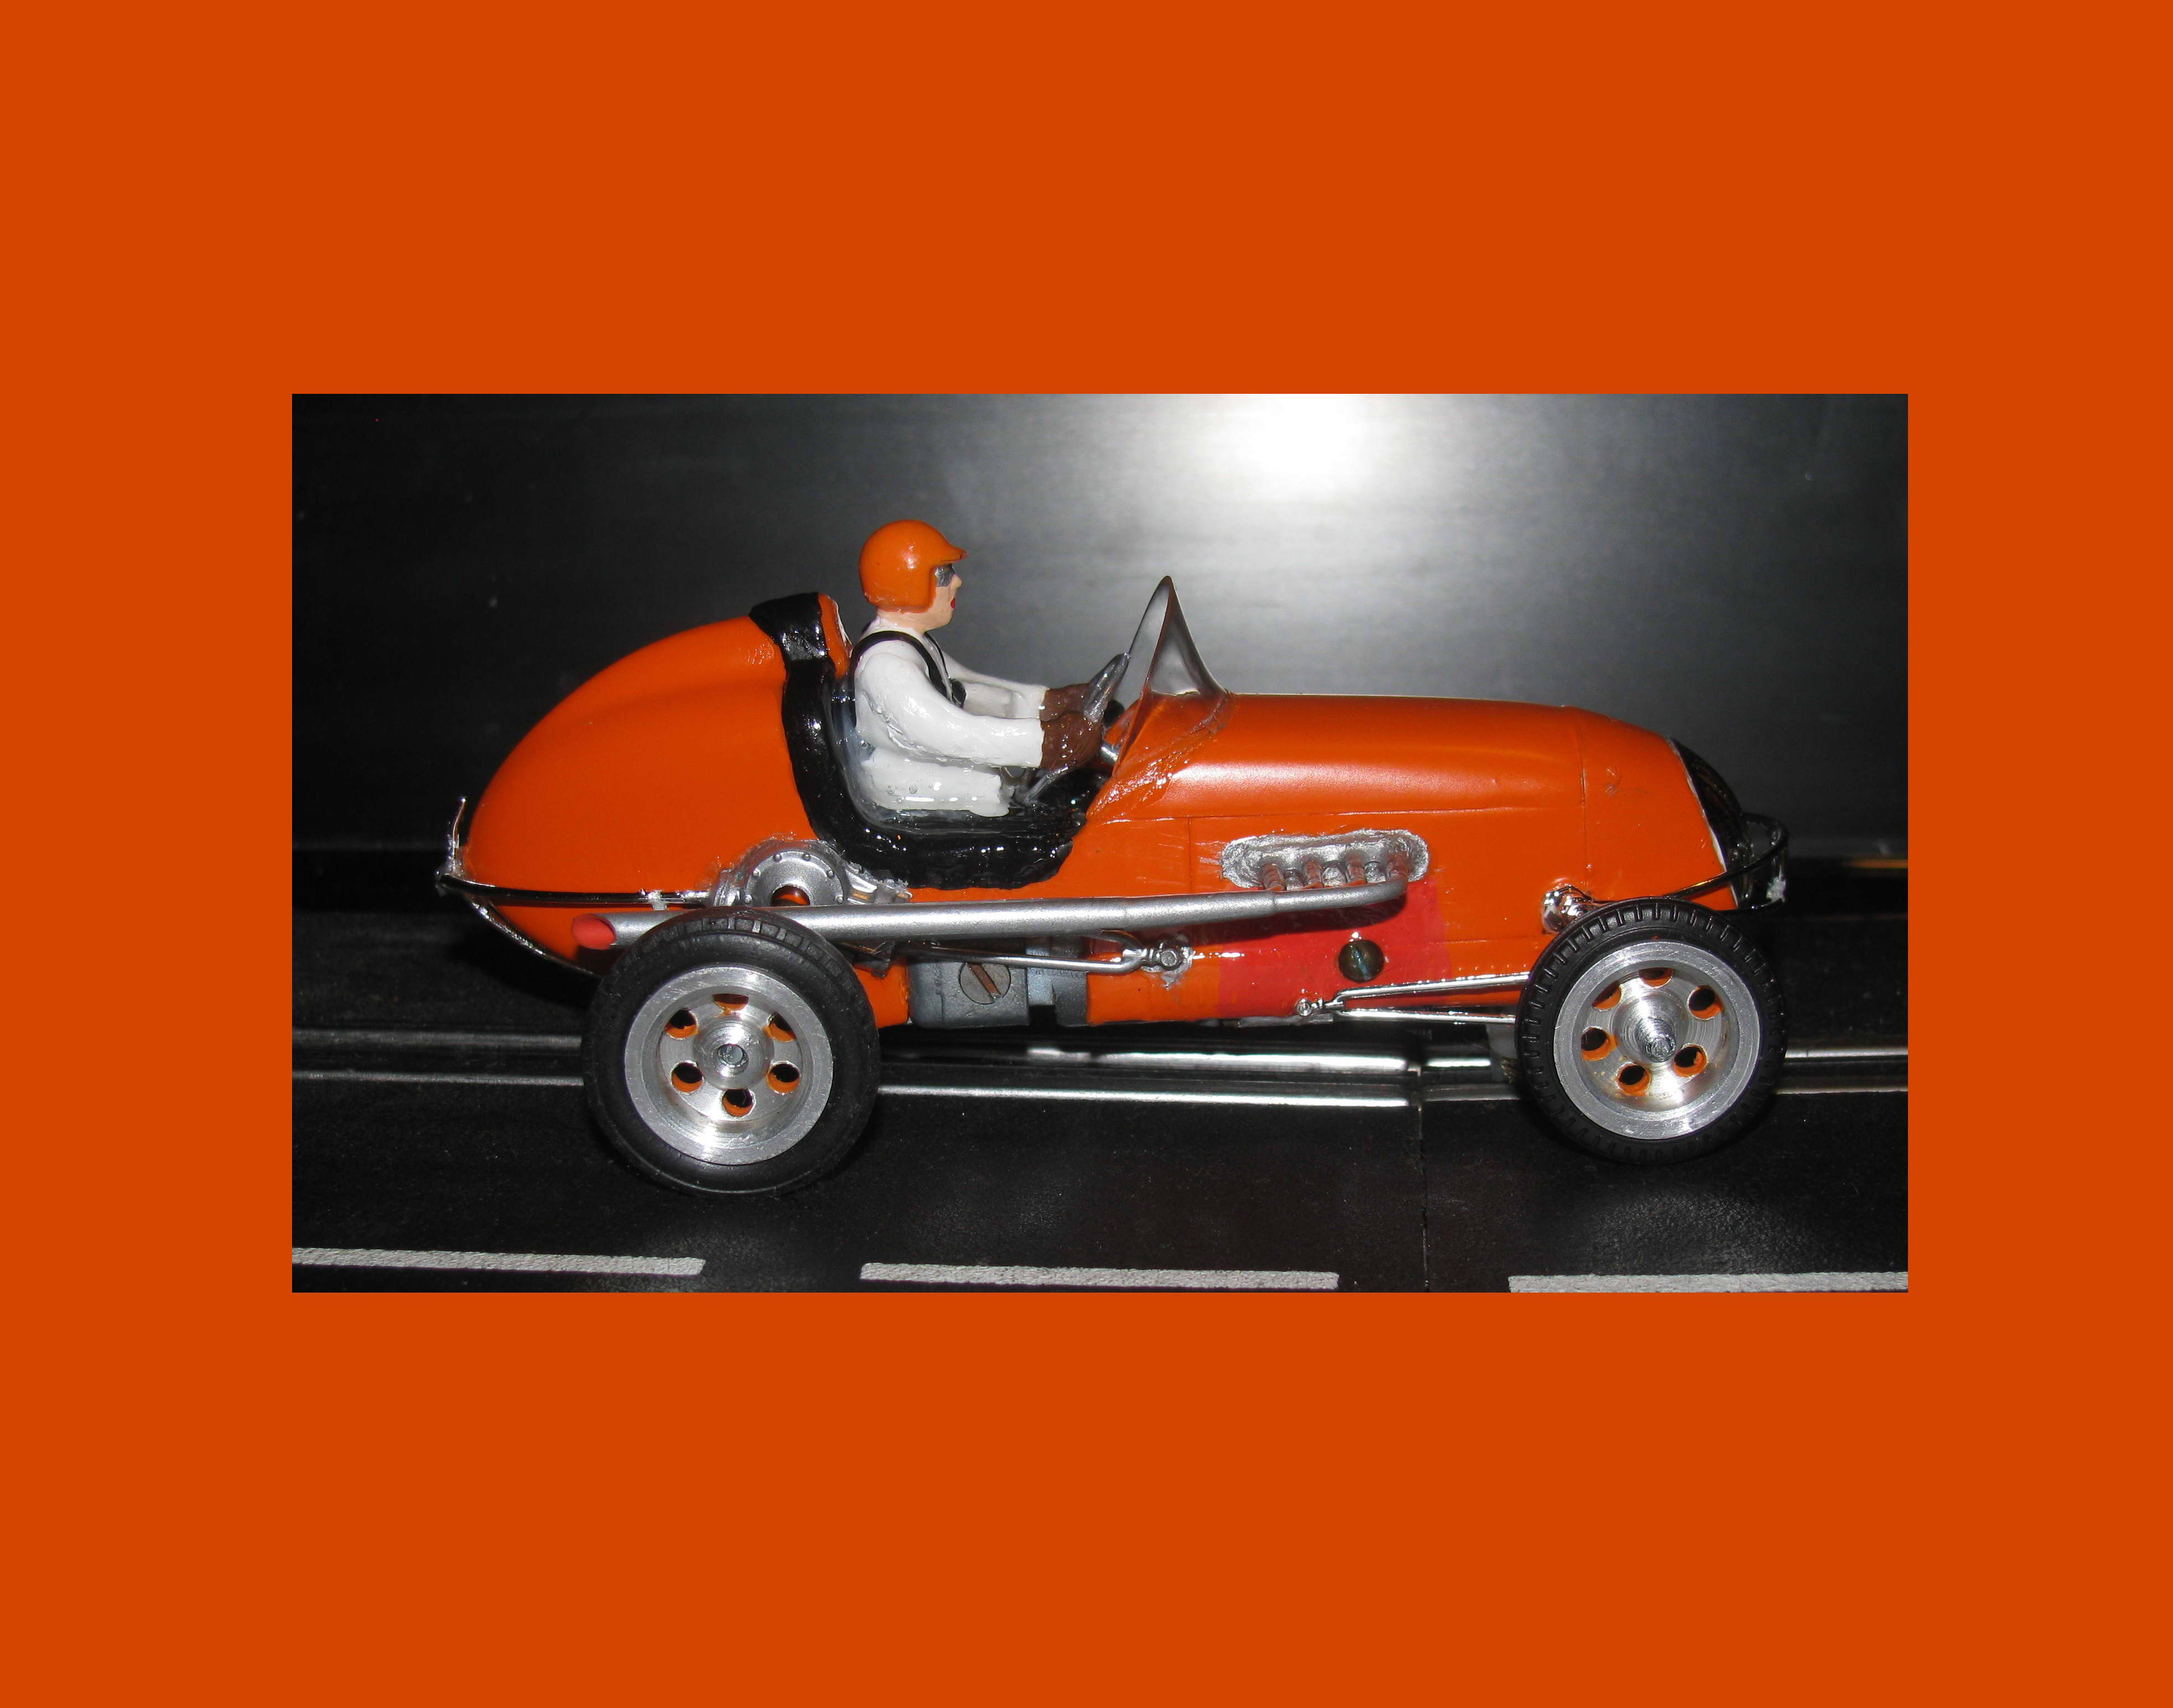 * SOLD * Vintage Revell Midget Racer Orange you glad slot car 1/32